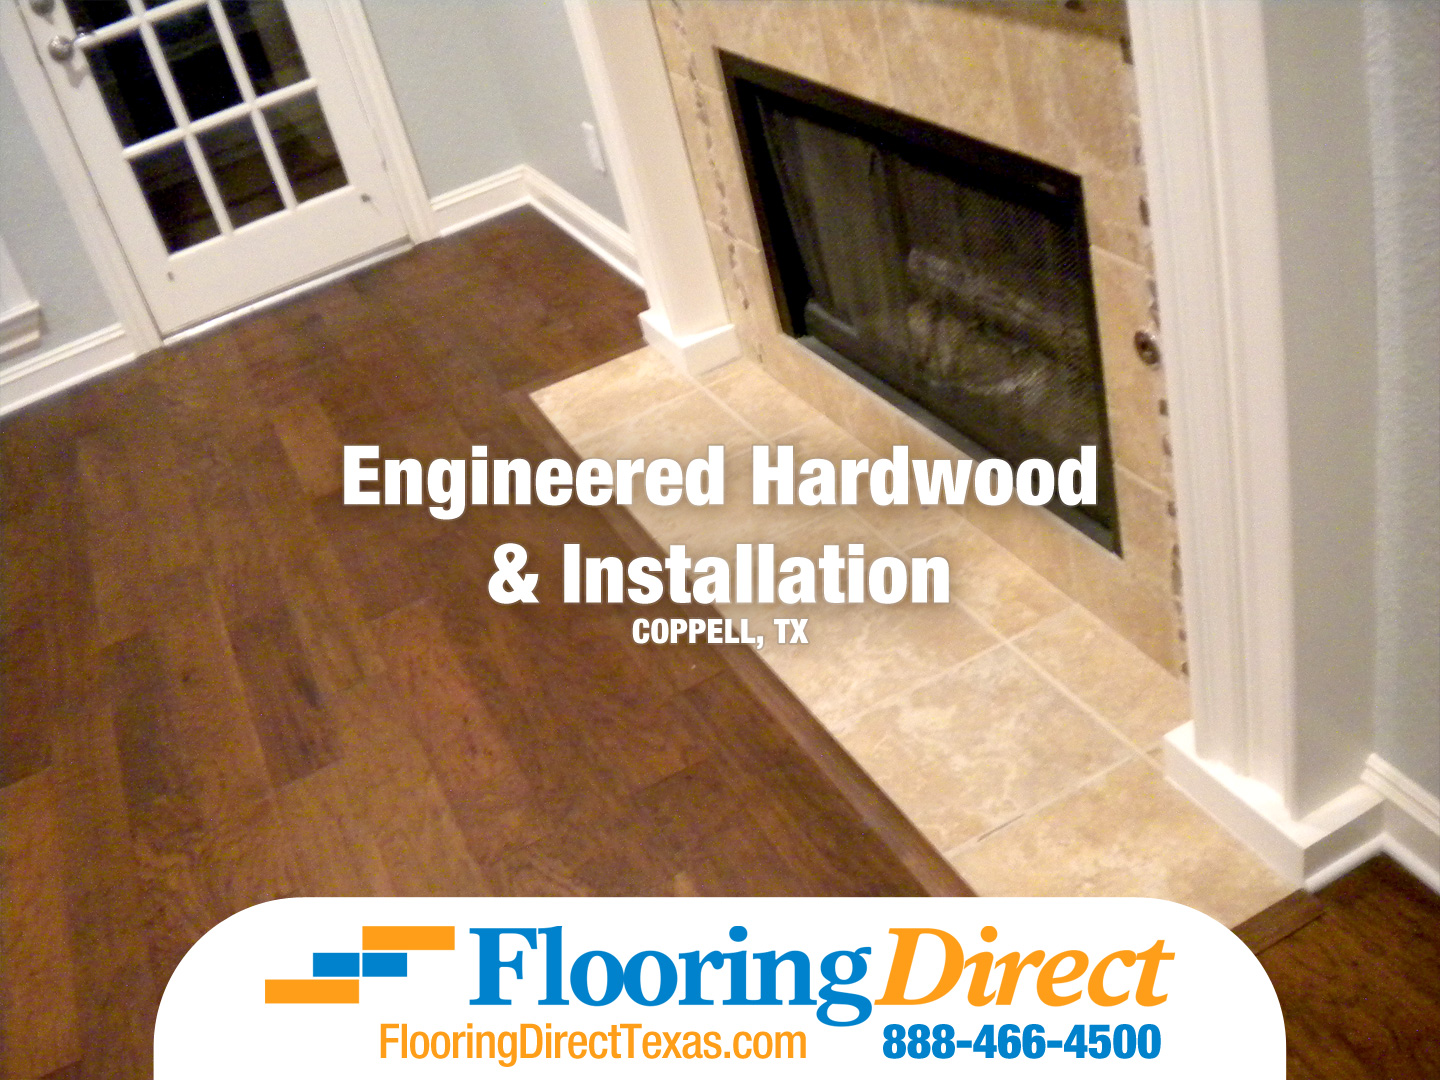 Engineered Hardwood And Installation Coppell TX Flooring Direct 888-466-4500 WS2